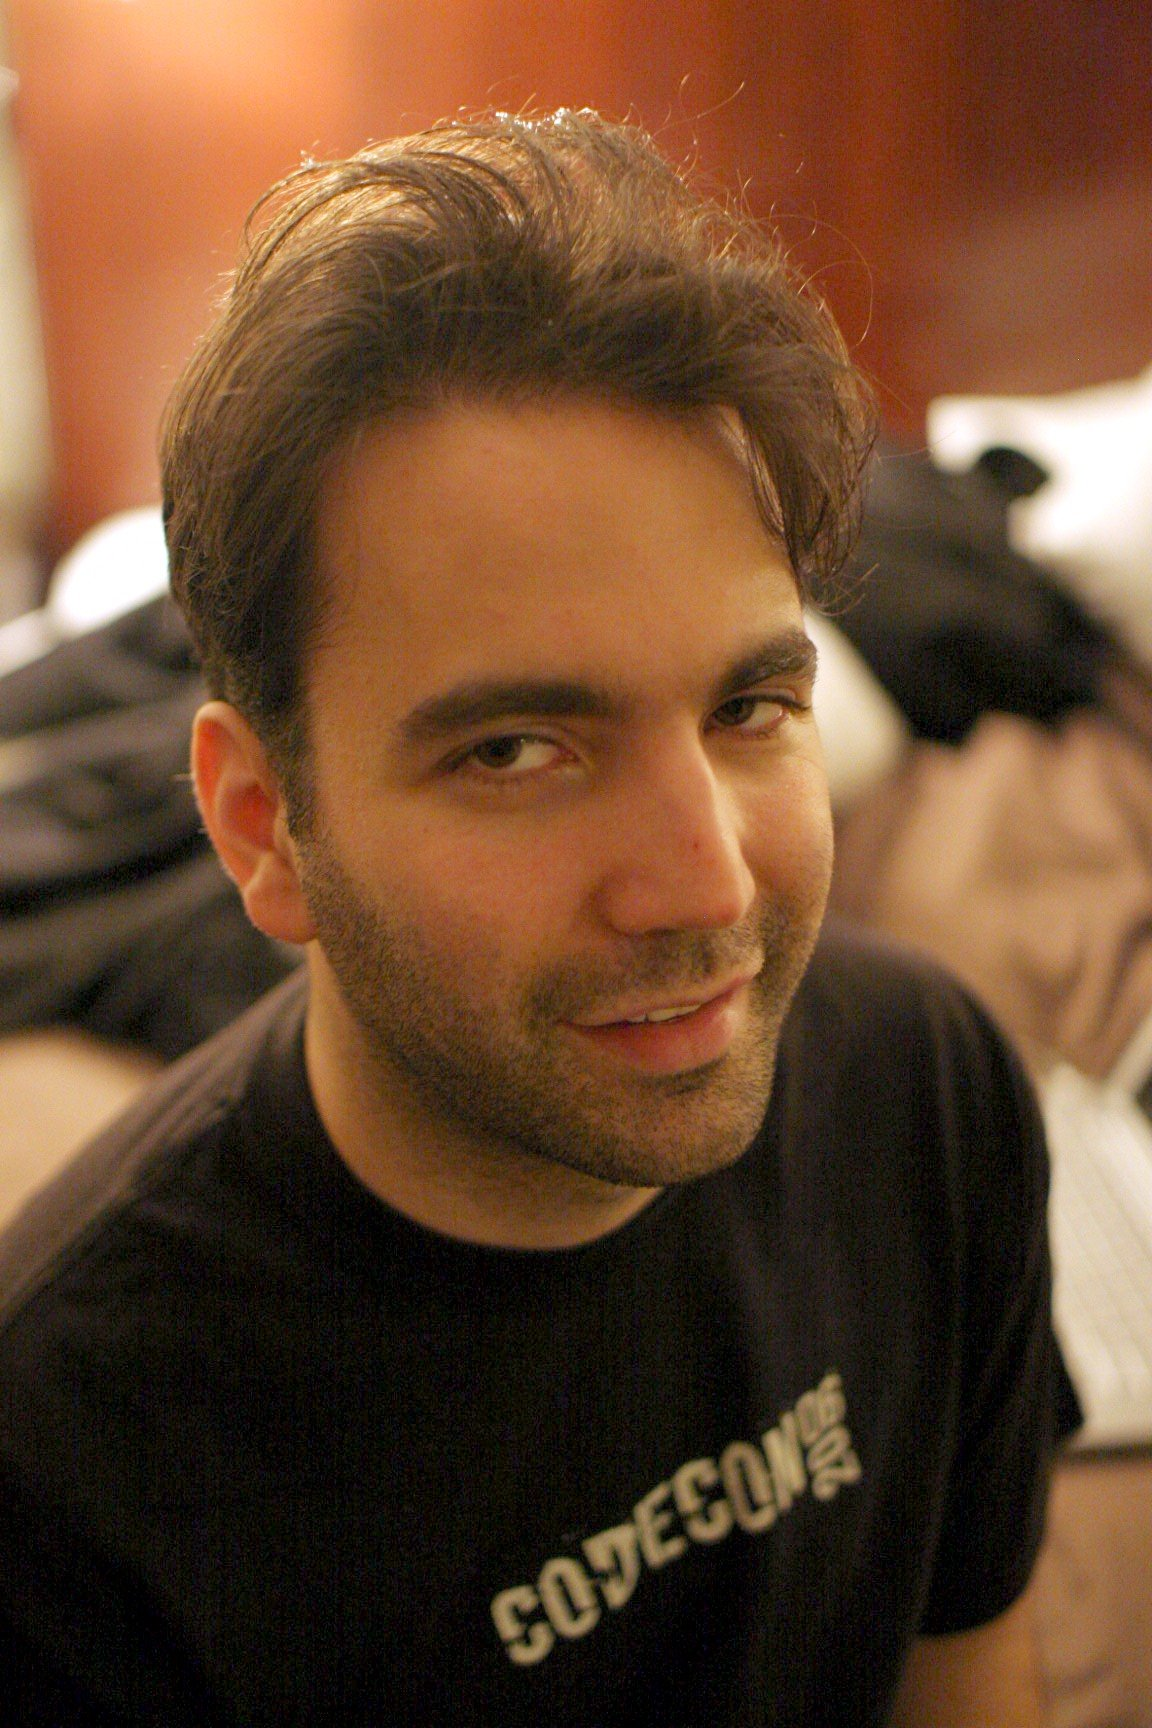 Bram Cohen, CEO and Founder of BitTorrent